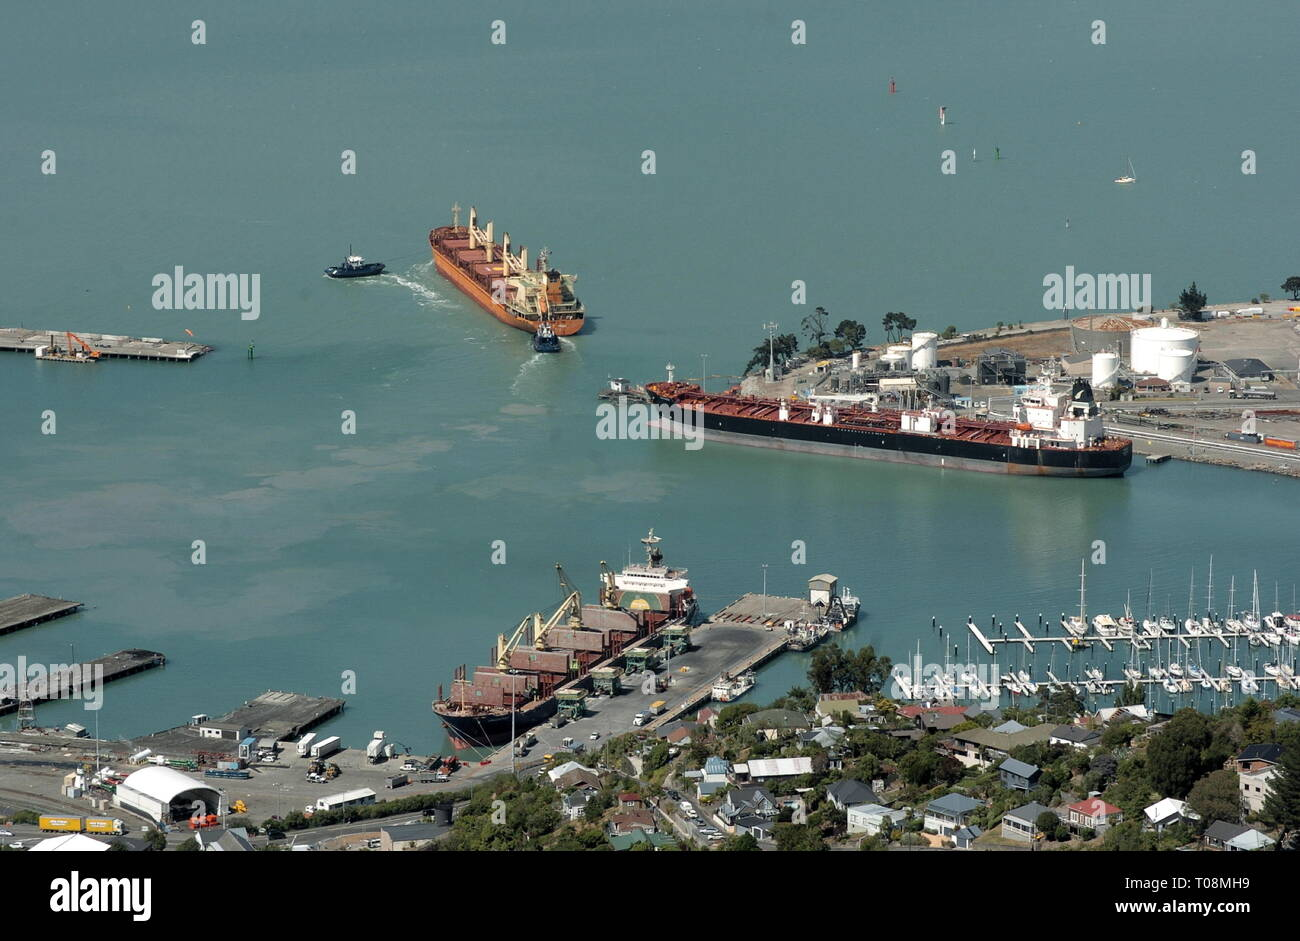 AJAXNETPHOTO. FEBRUARY, 2019. LYTTELTON, NEW ZEALAND. - SOUTH ISLAND PORT AND HARBOUR WITH BULKERS MOORED ALONGSIDE AND ONE DEPARTING THE HARBOUR.PHOTO:RICK GODLEY/AJAXREF:RG190217_0827 - Stock Image